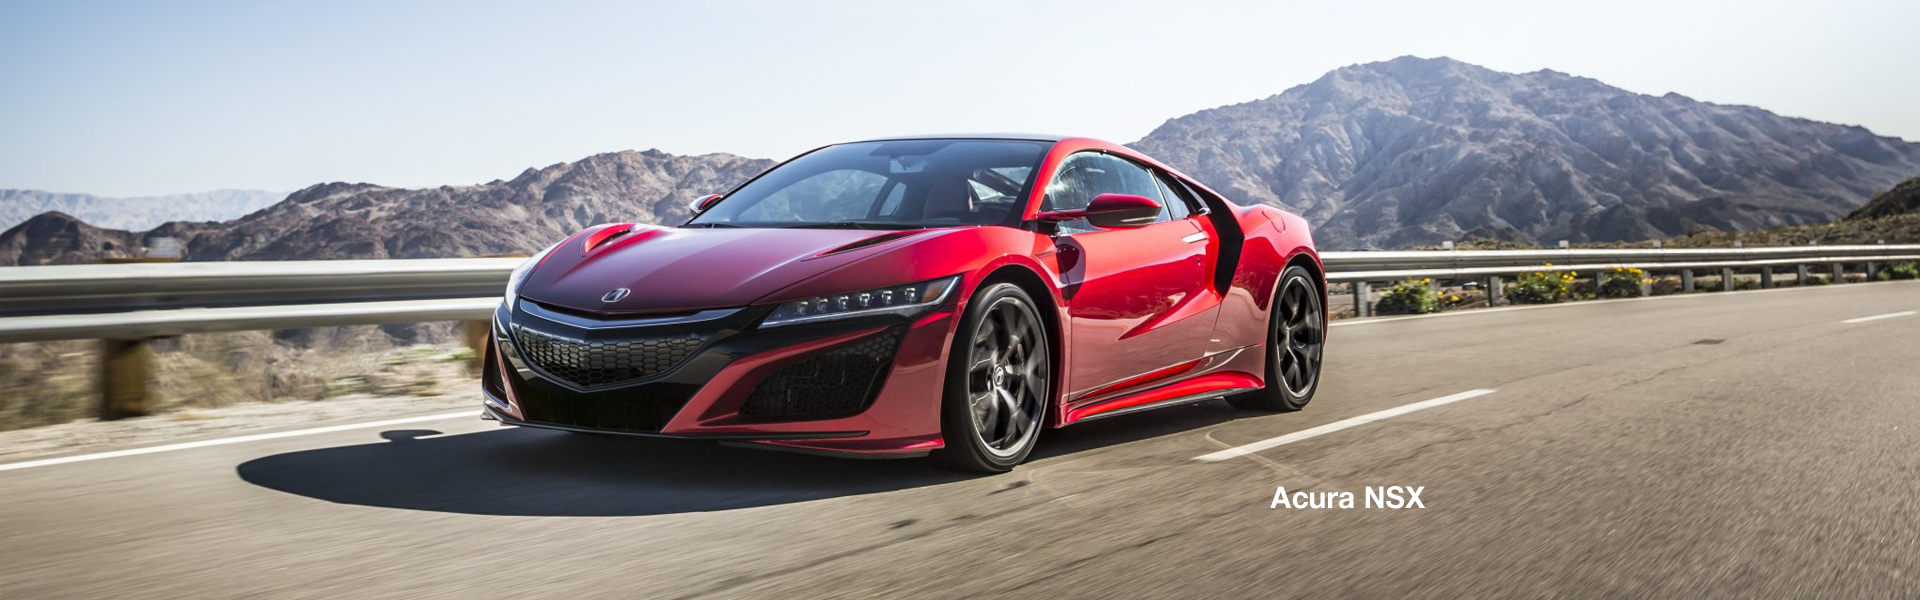 Acura NSX red